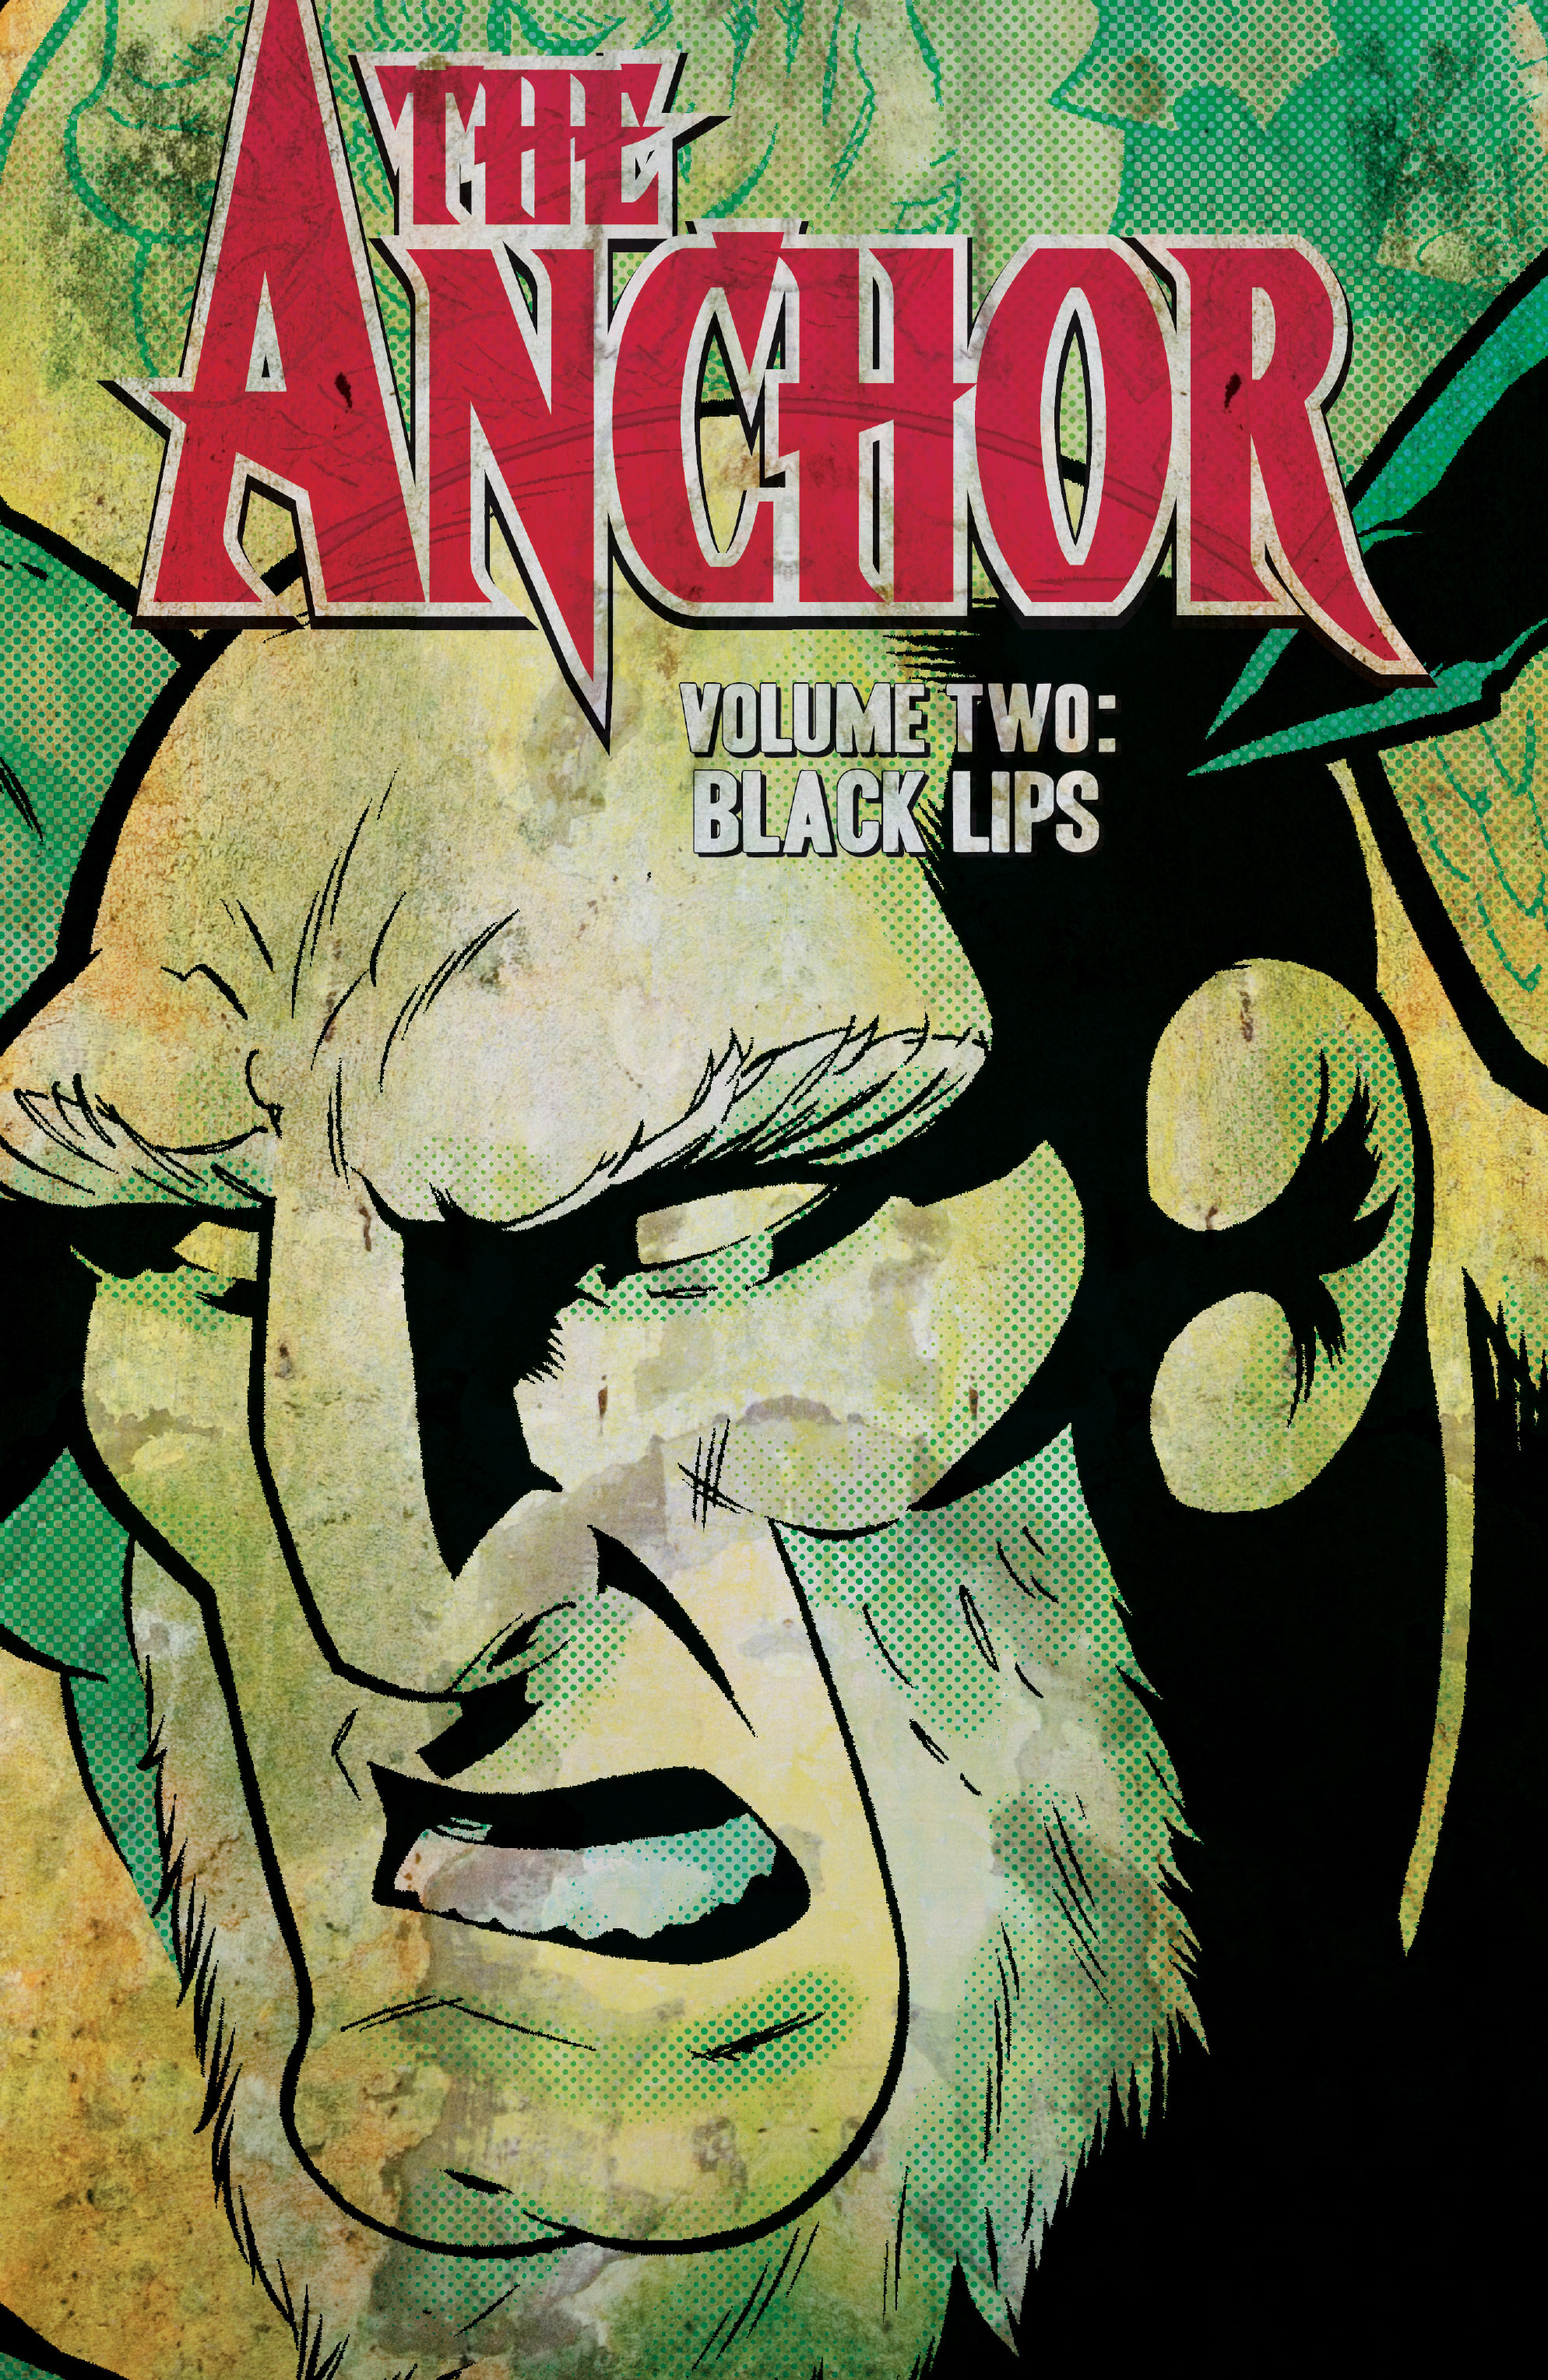 Read online The Anchor comic -  Issue # TPB 2 - 2